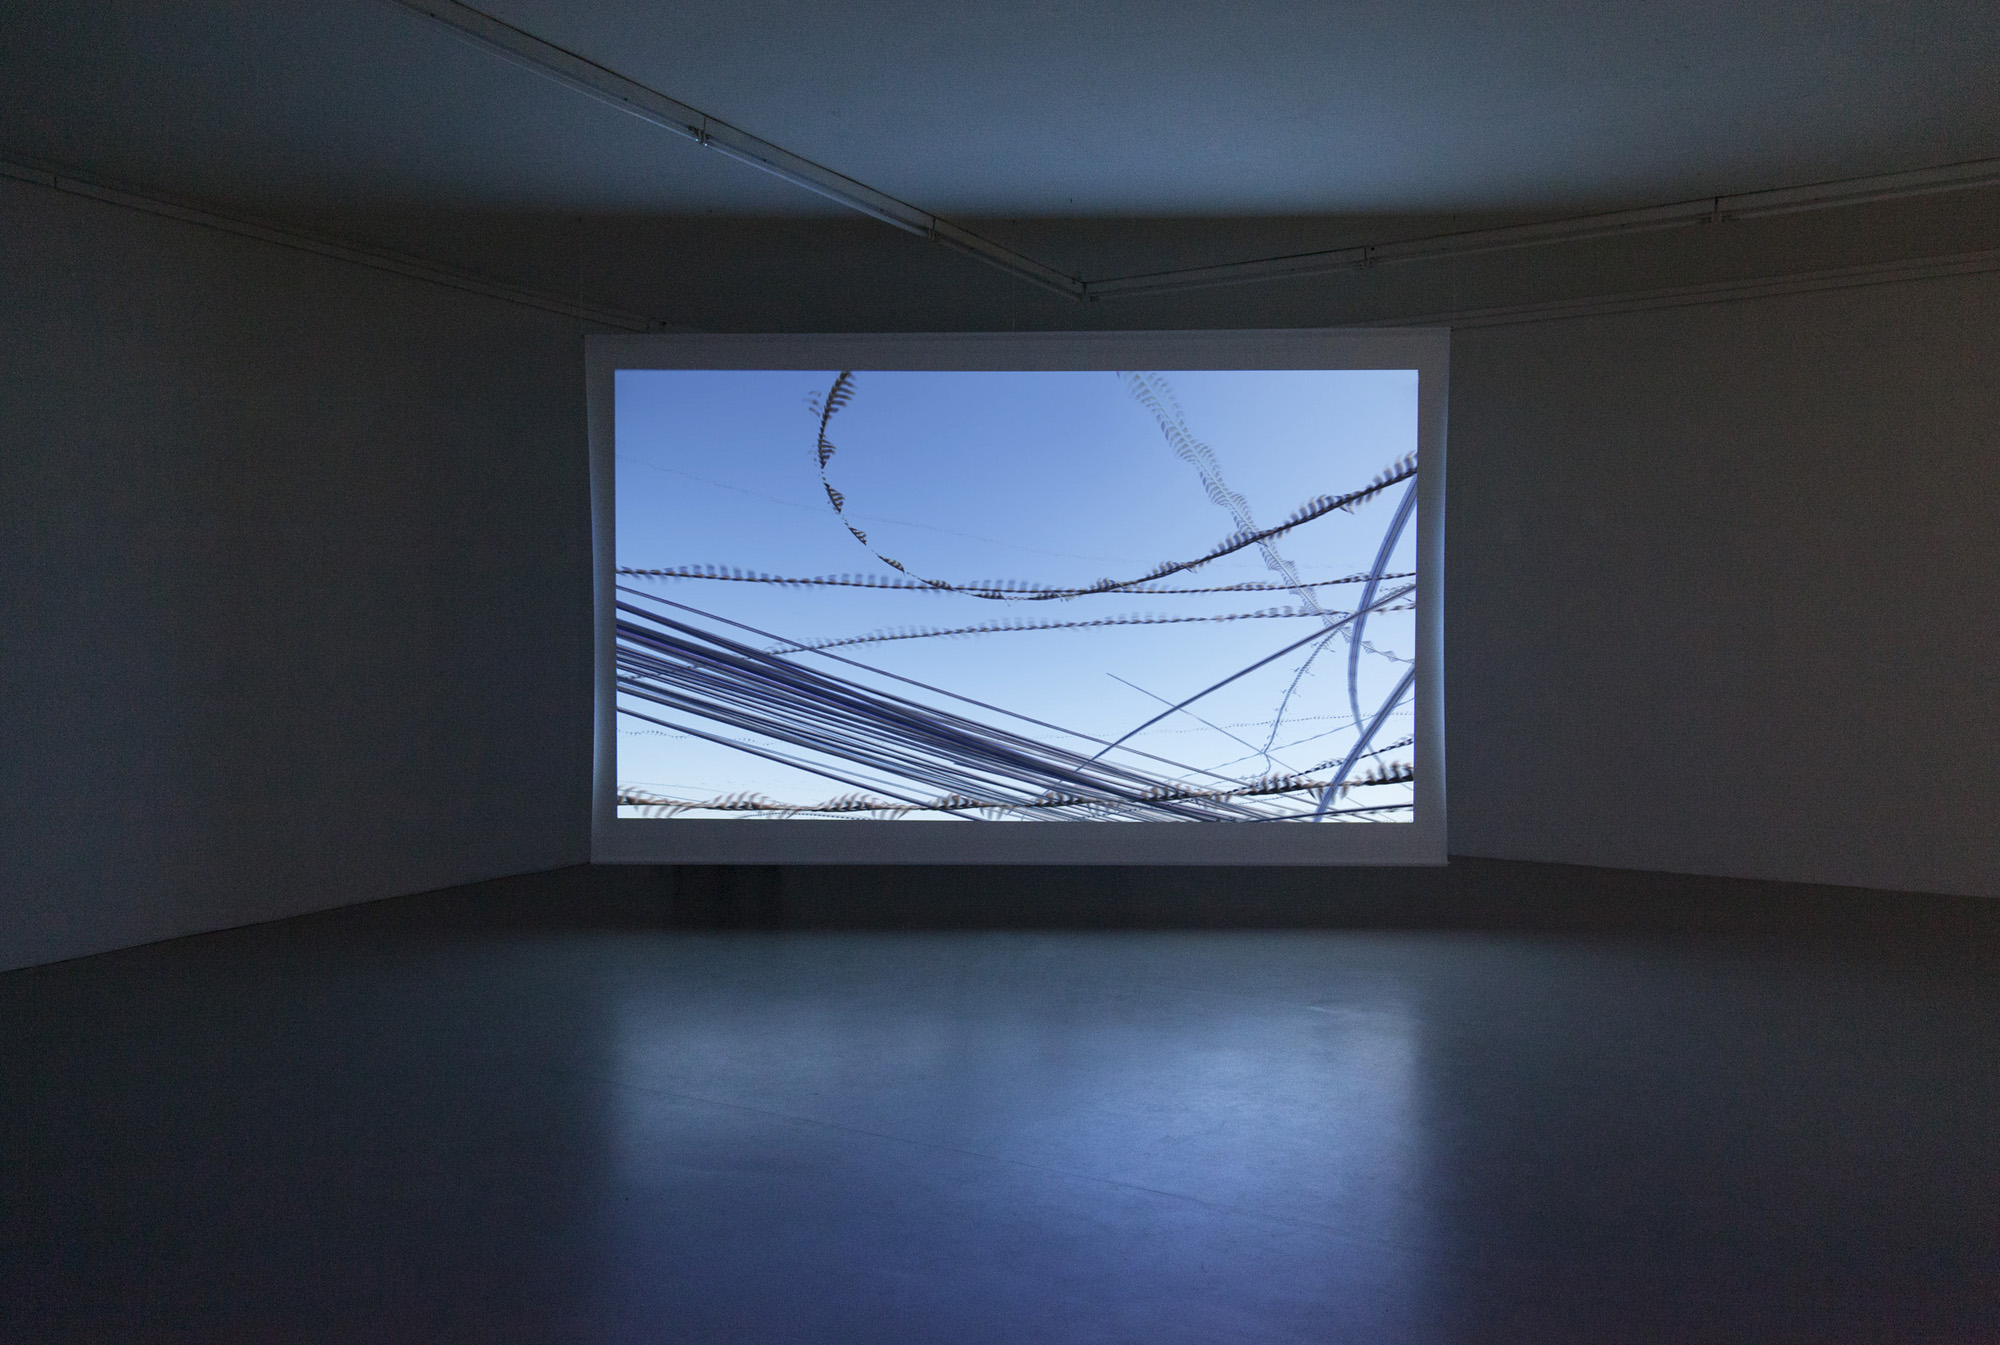 Planes, Single-channel video, 45 min., 2016  (installation view)  Planes compresses the flight trajectories of all incoming and outgoing planes of an airport in one day. In post-production the individual frames are overlaid to condense time and visualize the linear motion traces of the programmed landing and taking-off of aircraft. The video follows the dramaturgy of the day which is defined by the changing wind directions and flight trajectories, as well as major traffic time-based patterns.